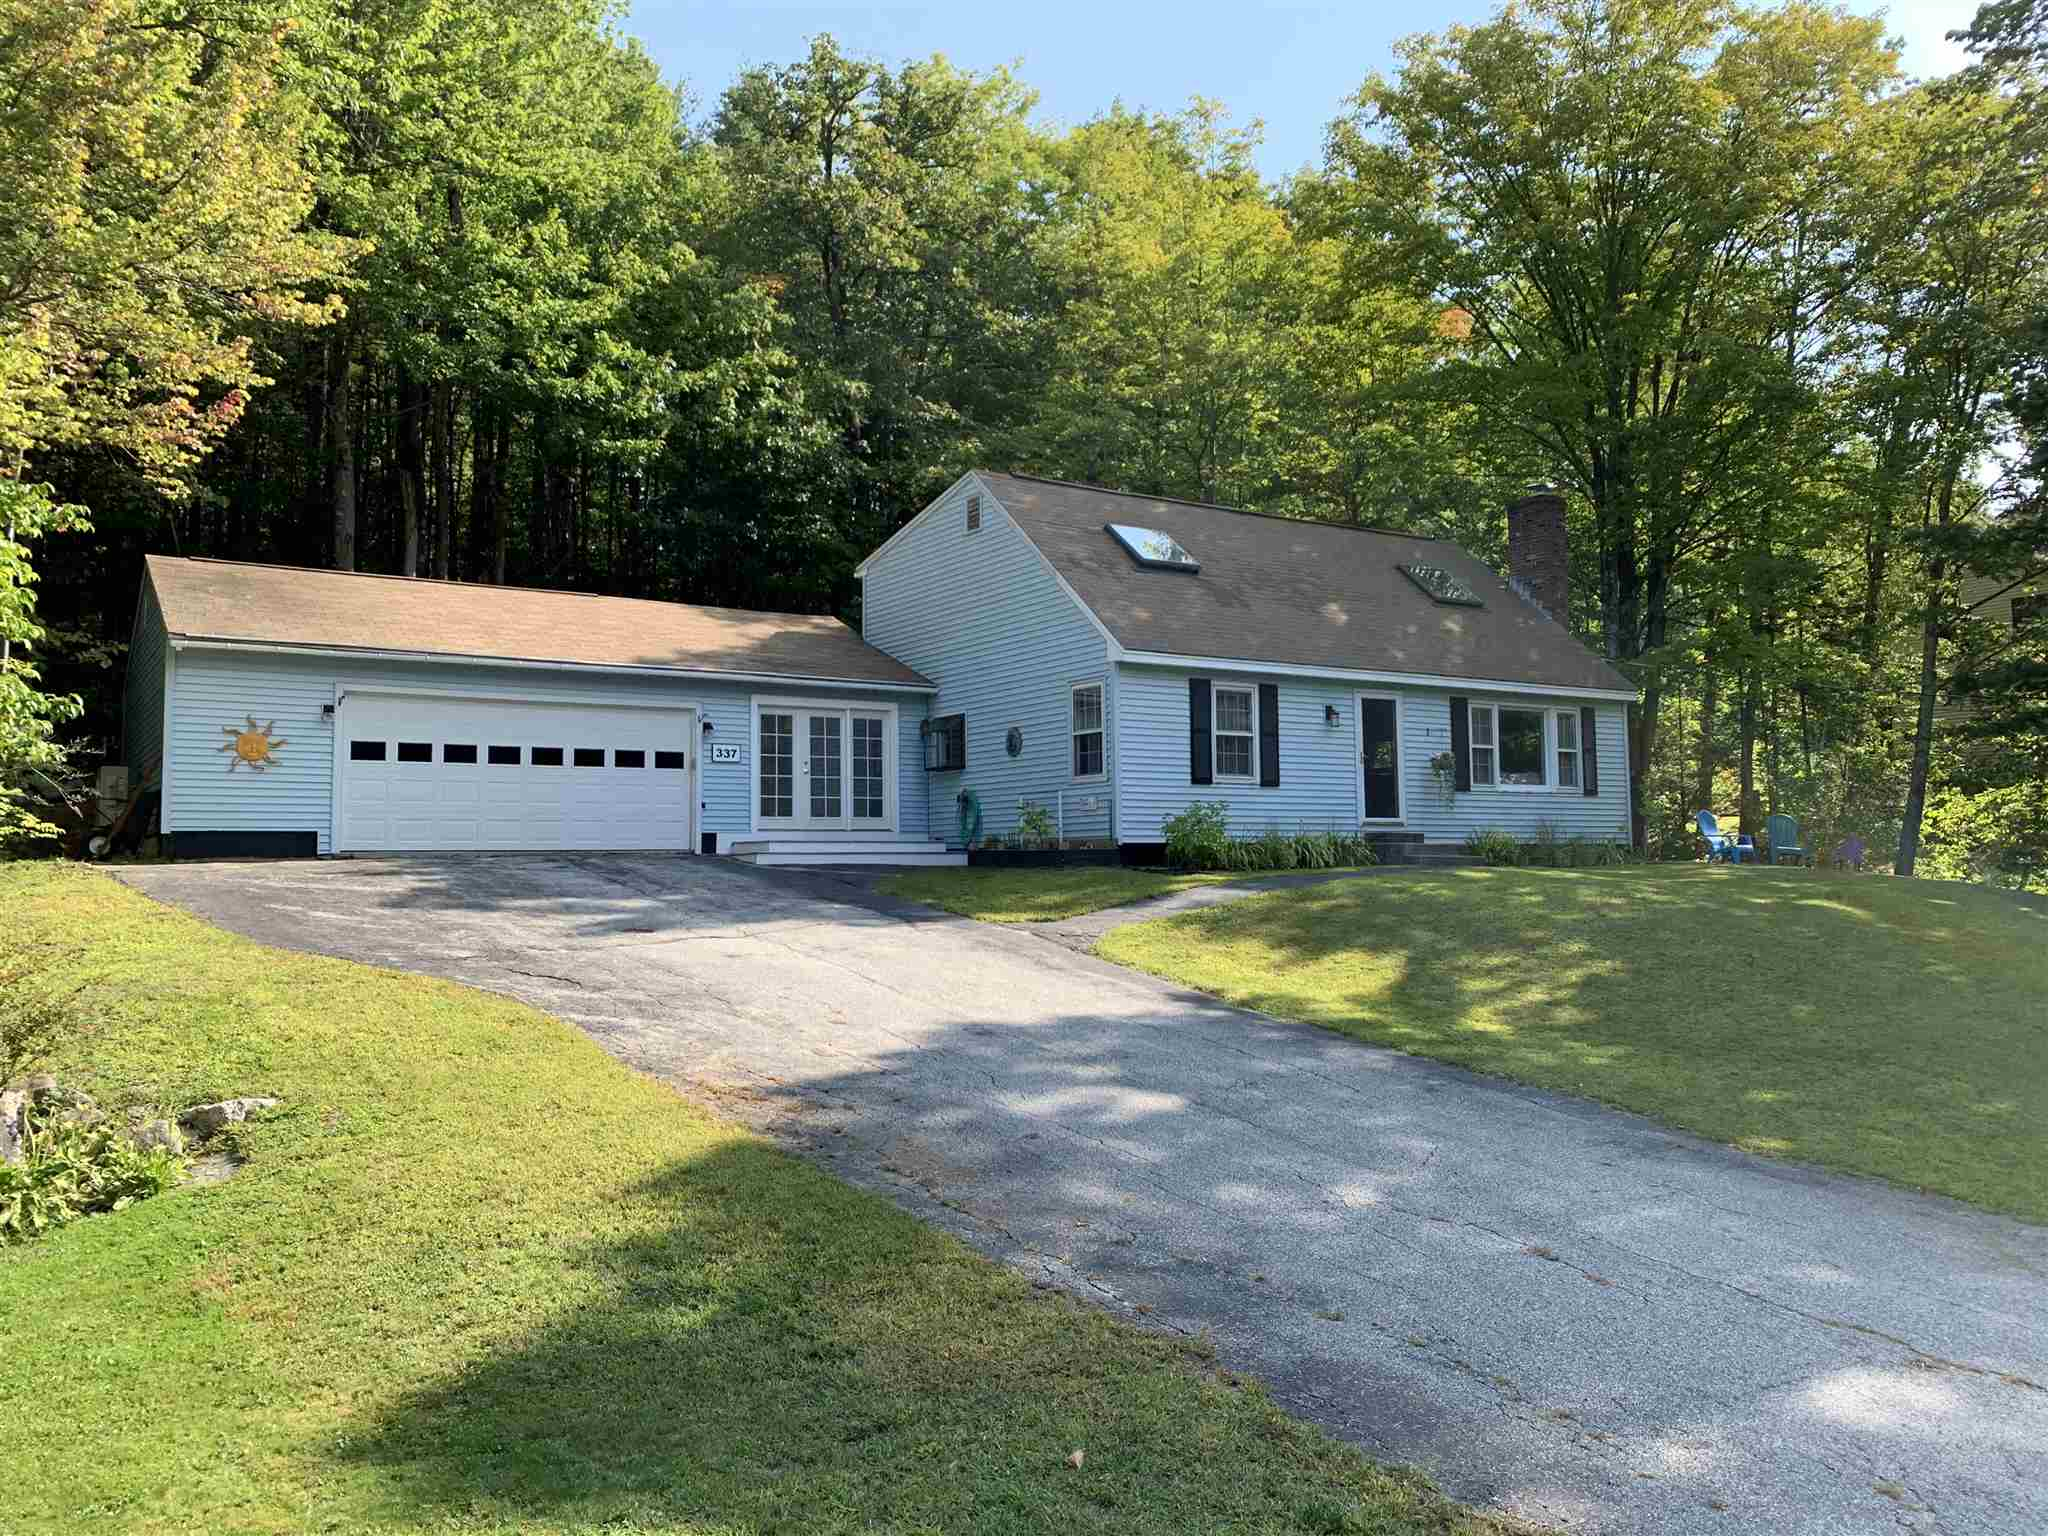 MLS 4827472: 337 Barrett Road, New London NH